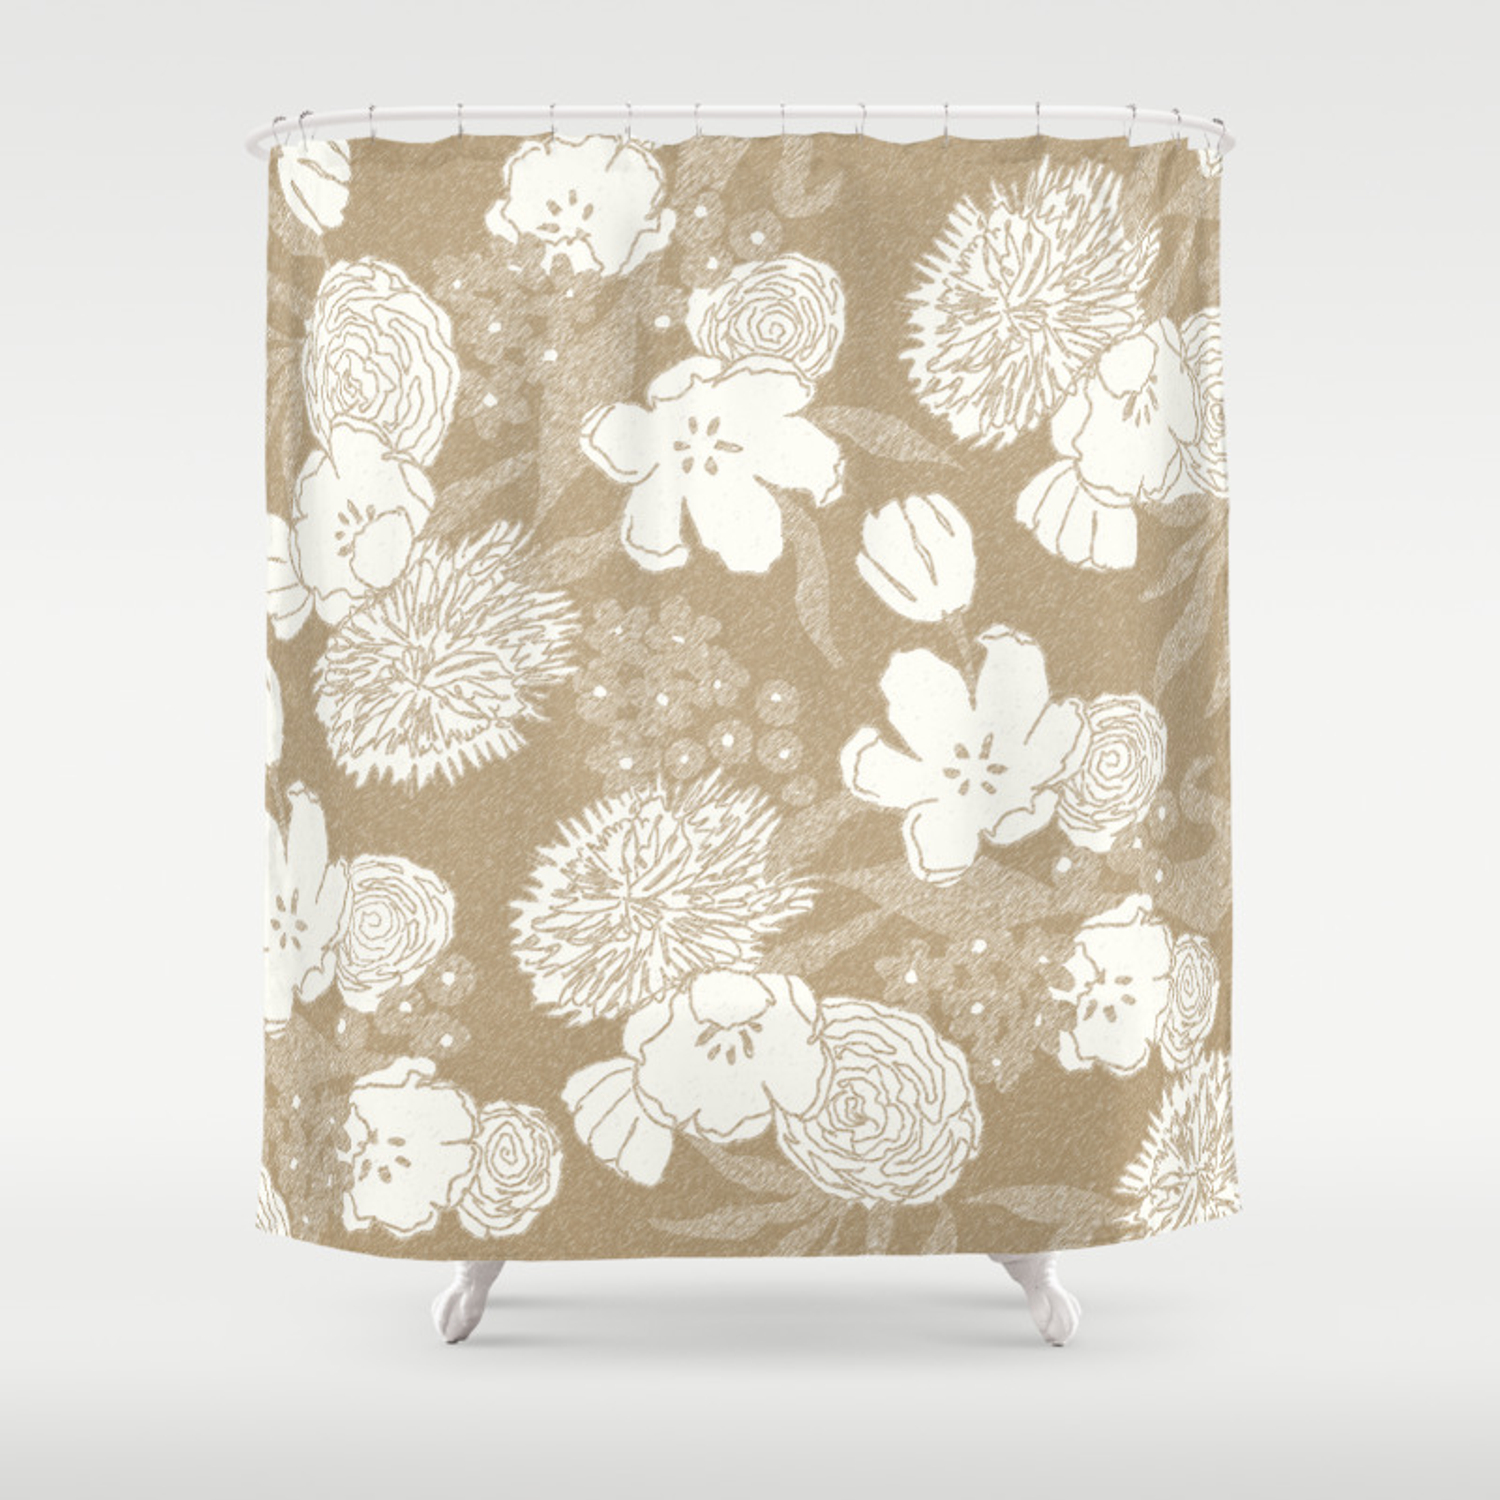 Sketchy Floral Camel Ivory White Shower Curtain